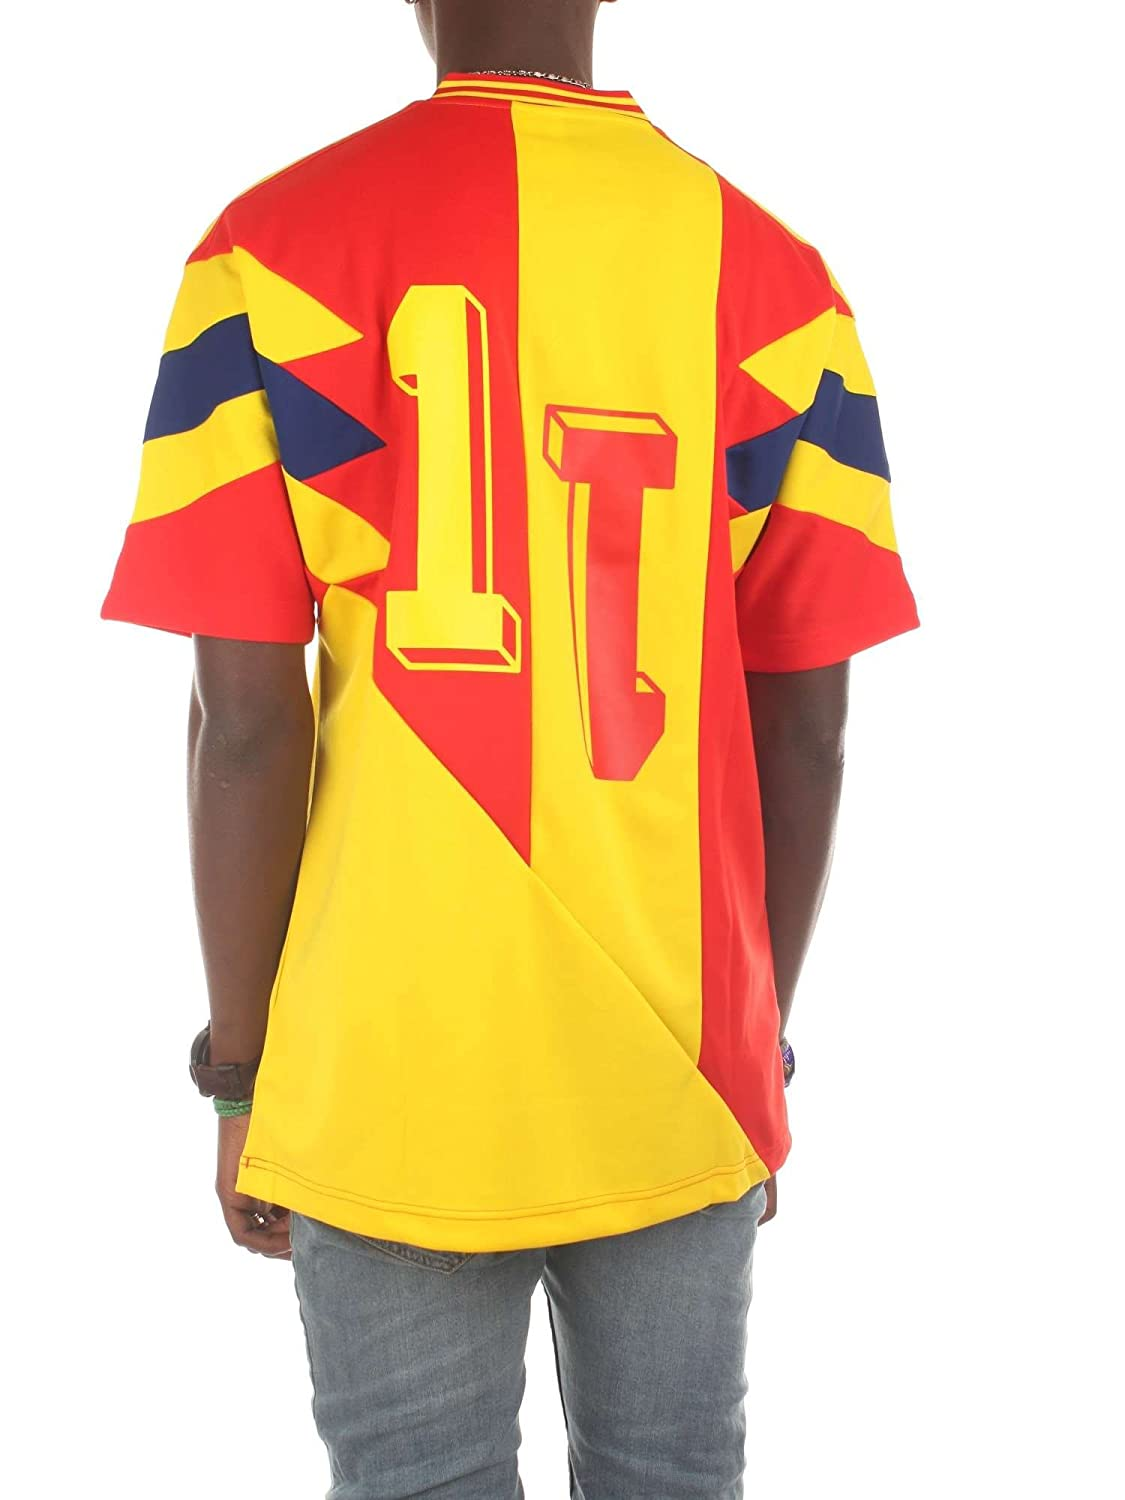 e1ecf5a1f Adidas T-Shirt Colombia Mashup Yellow red Blue Size  L (Large)   Amazon.com.au  Fashion